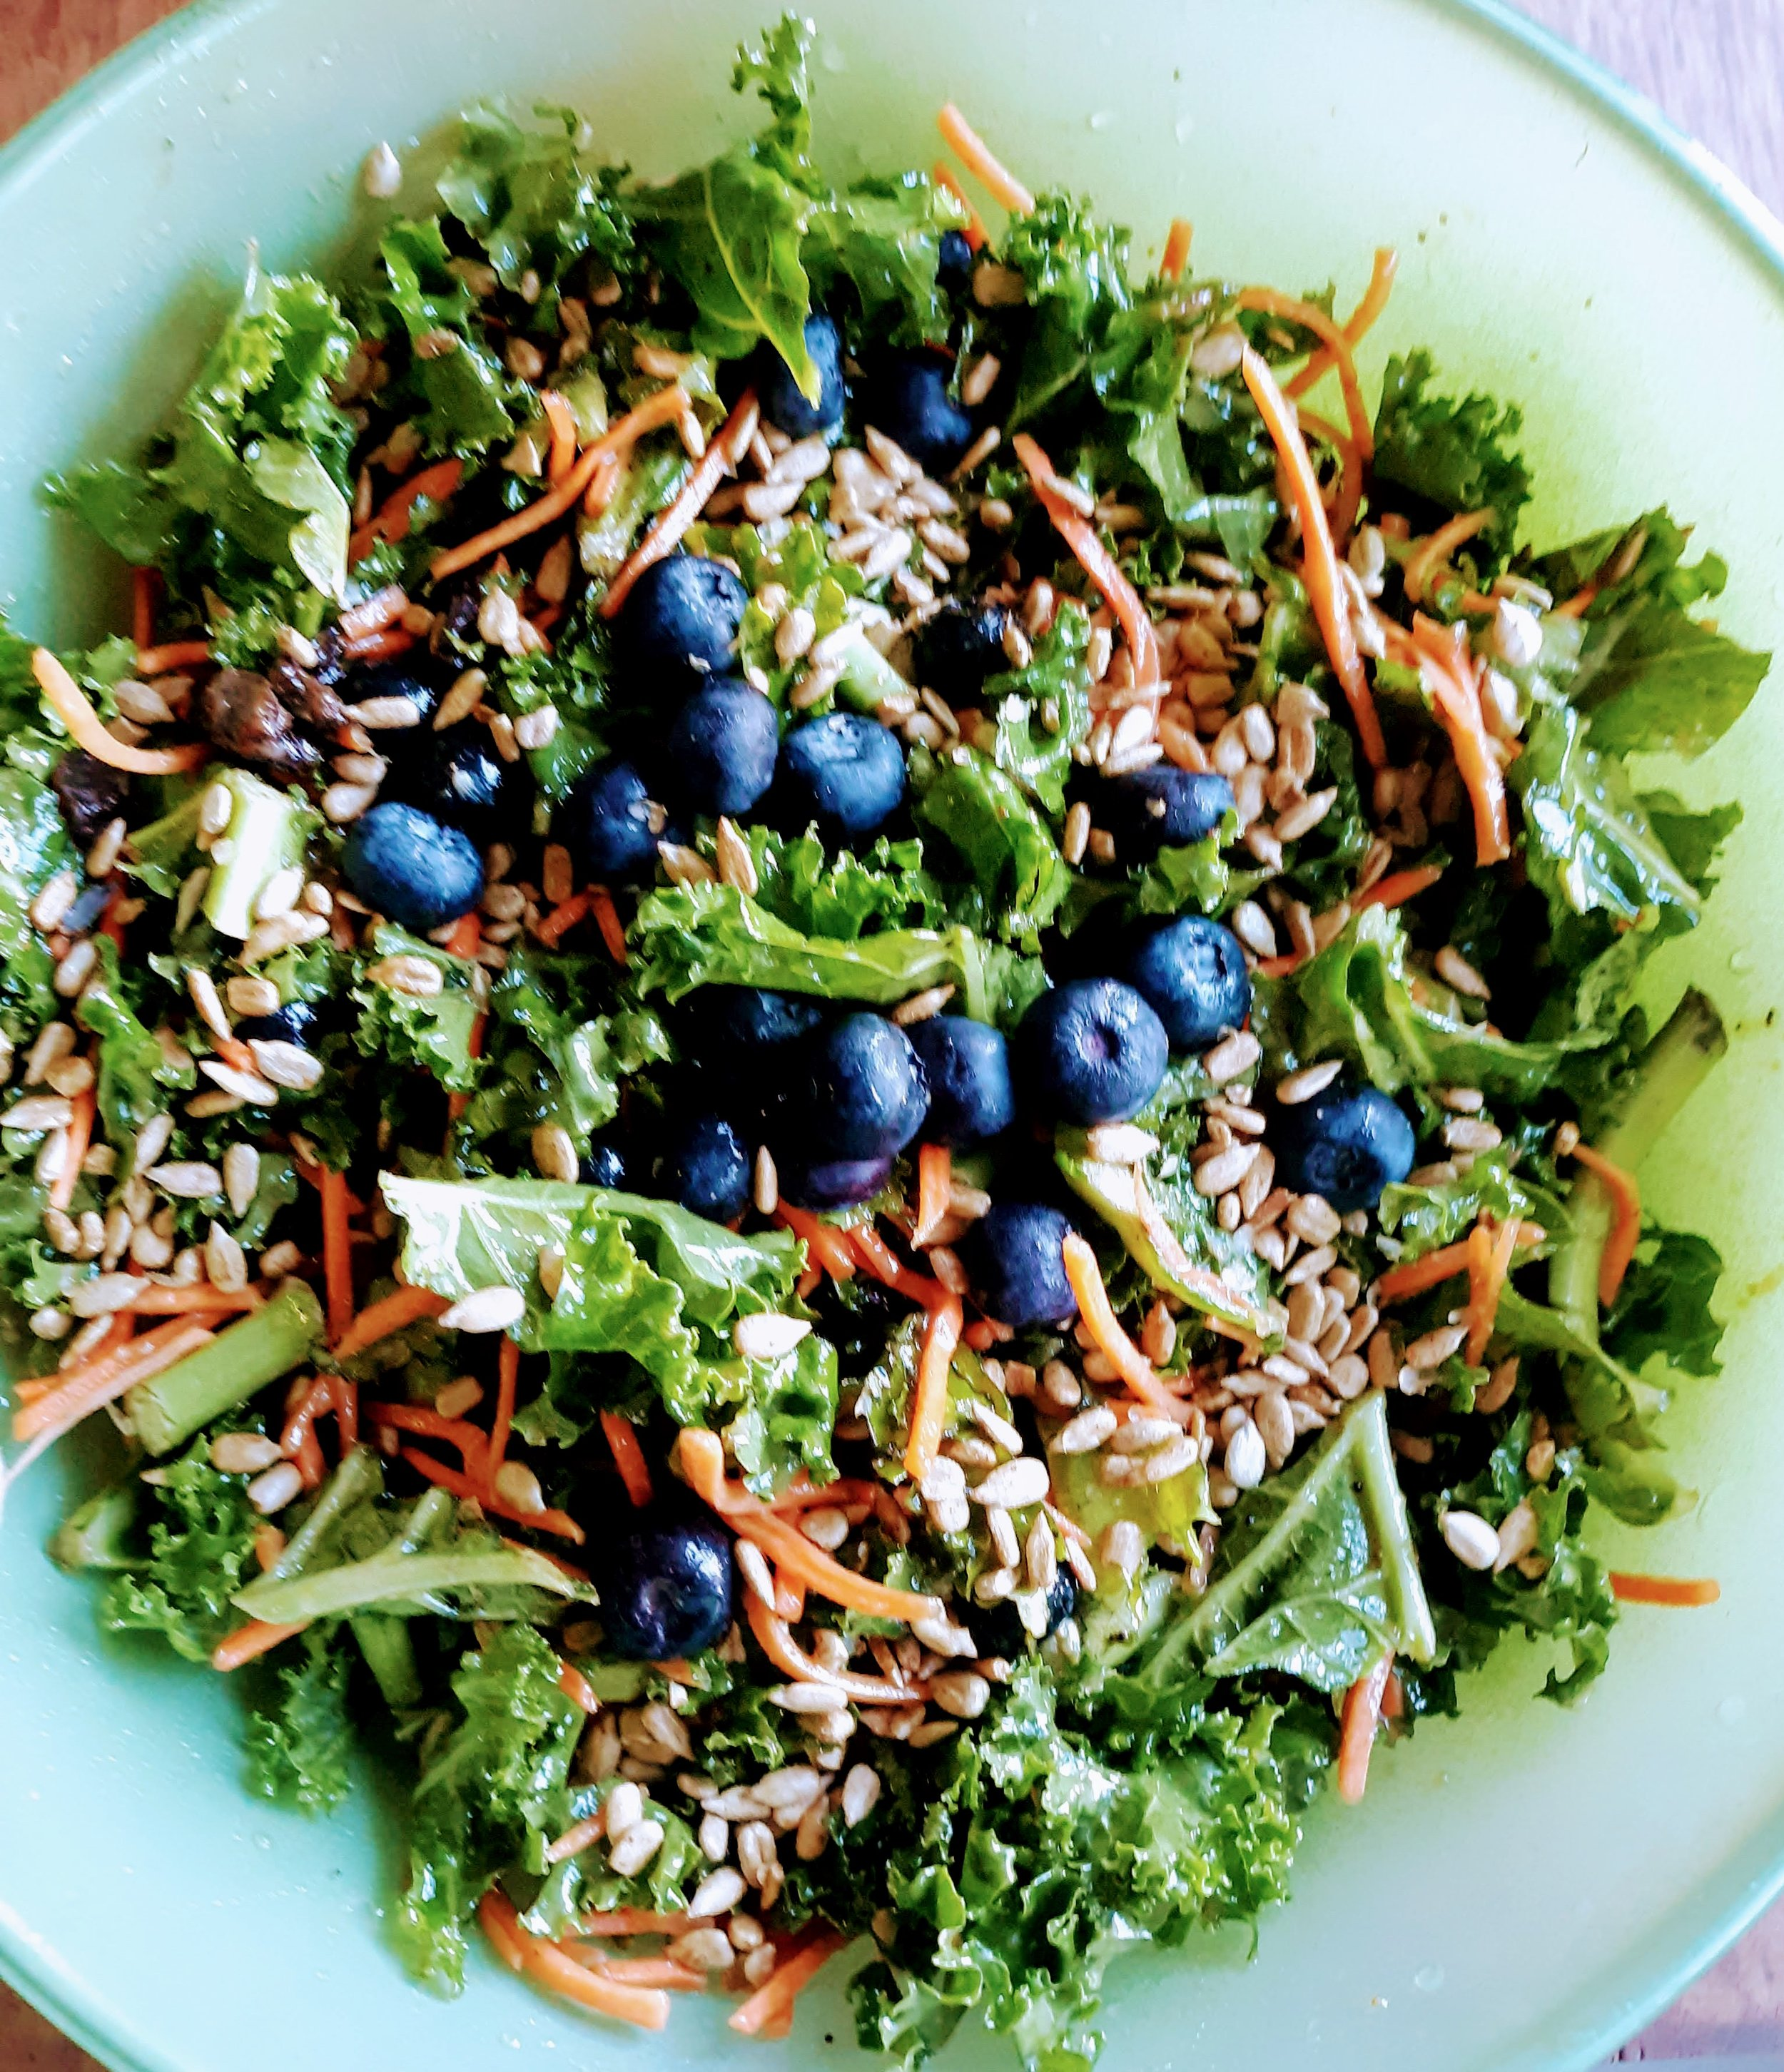 Kale & Blueberry Salad with Poppy Seed Dressing